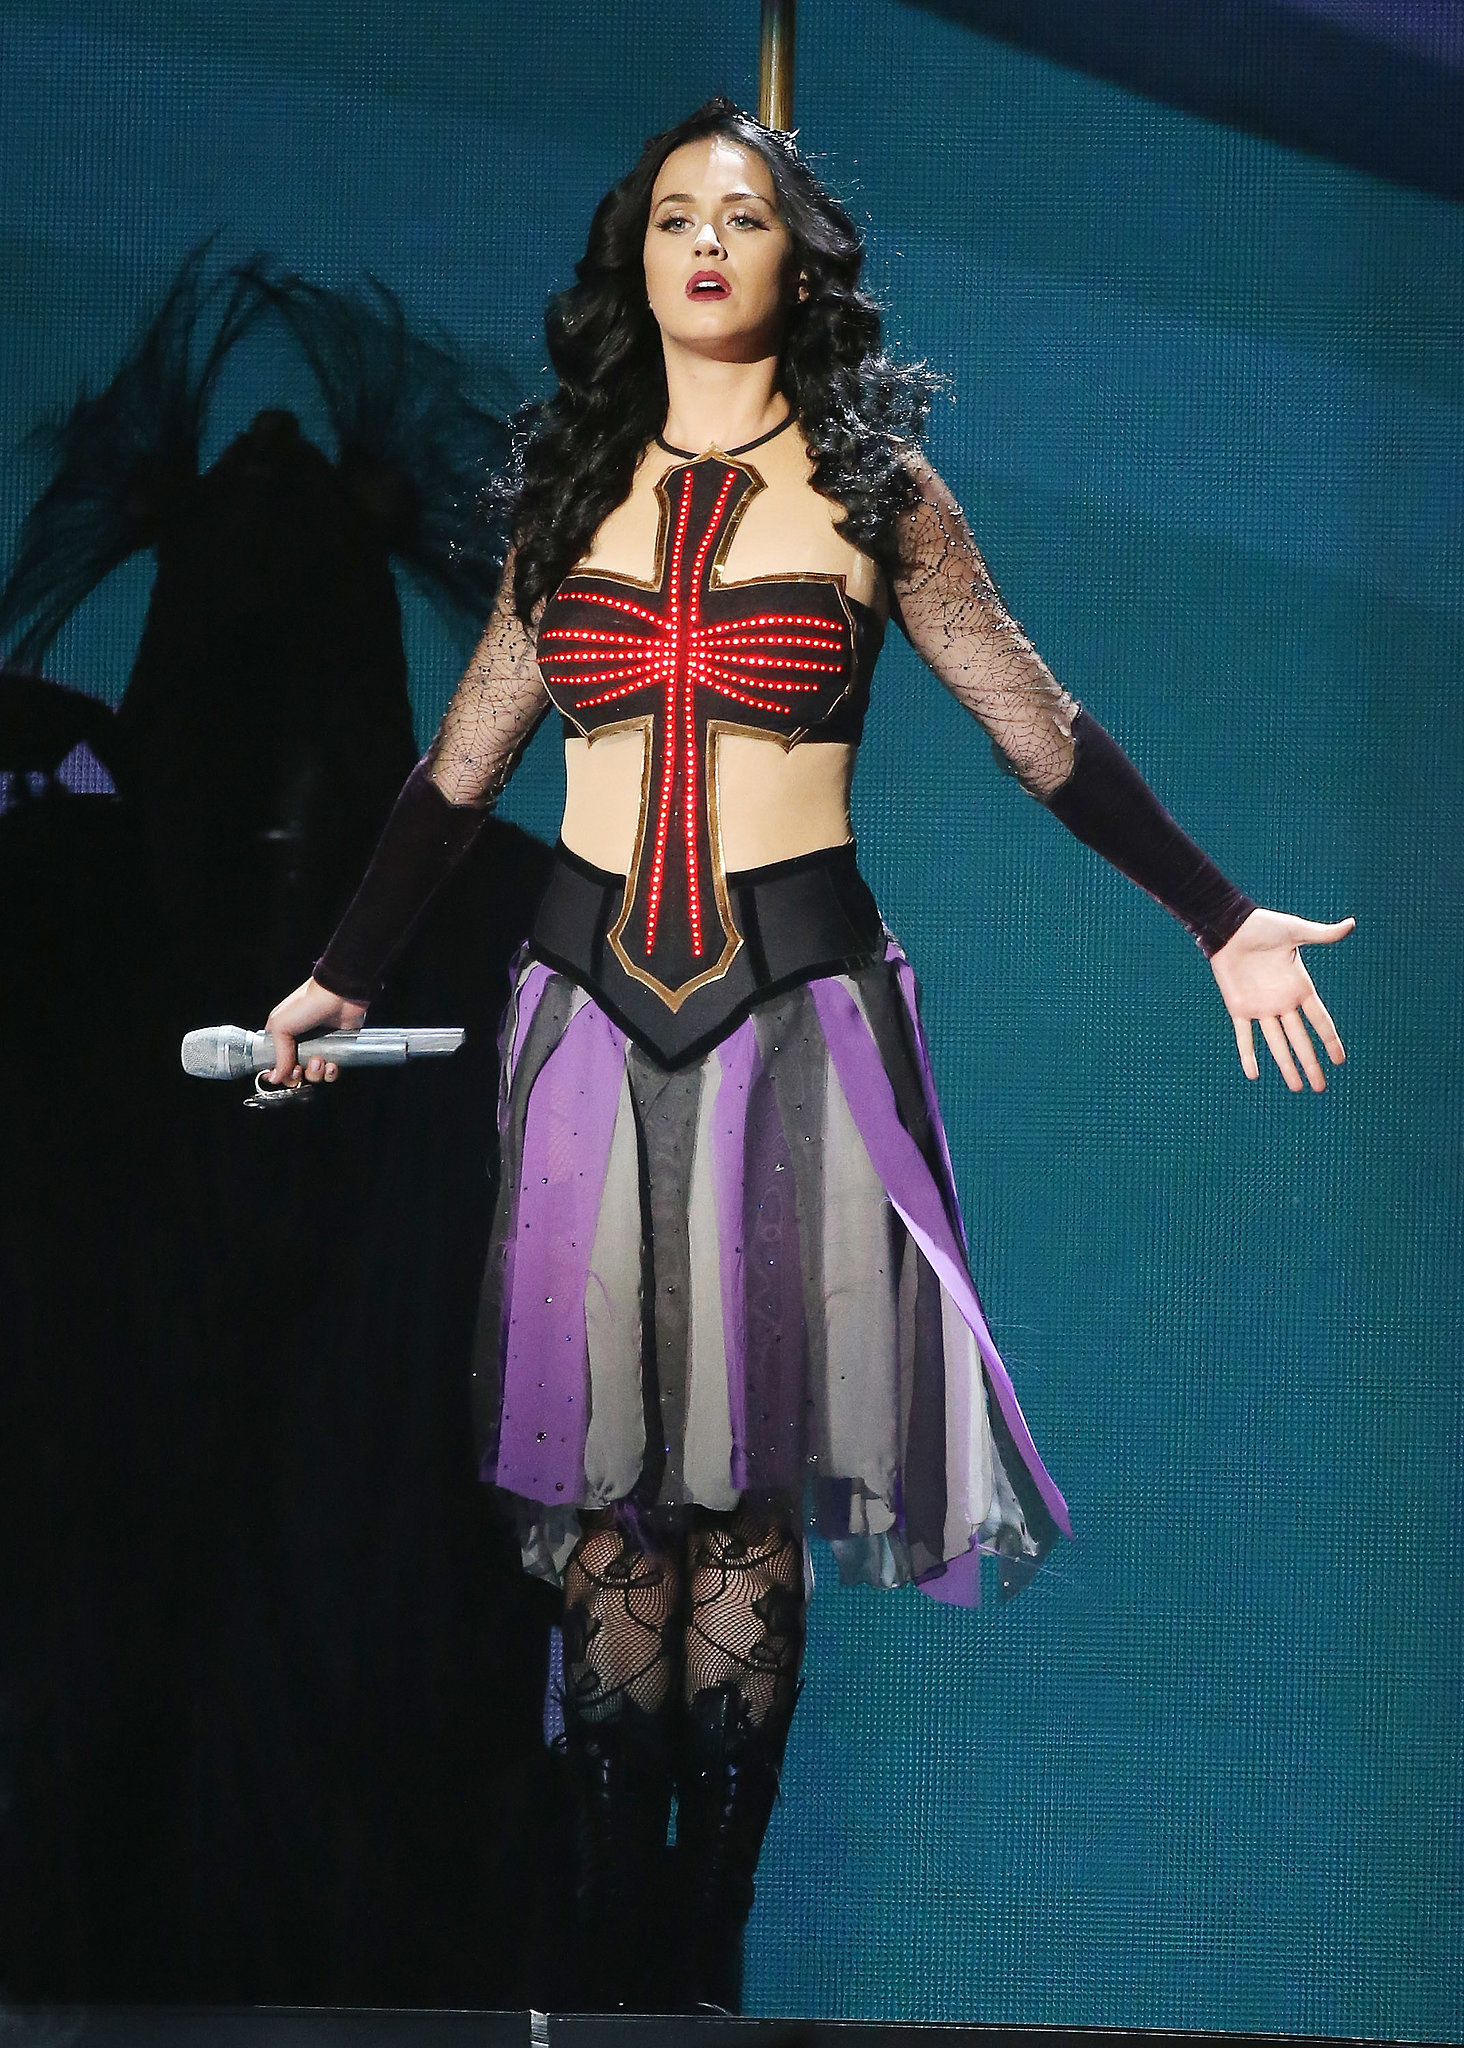 Katy Perry's Performance Look